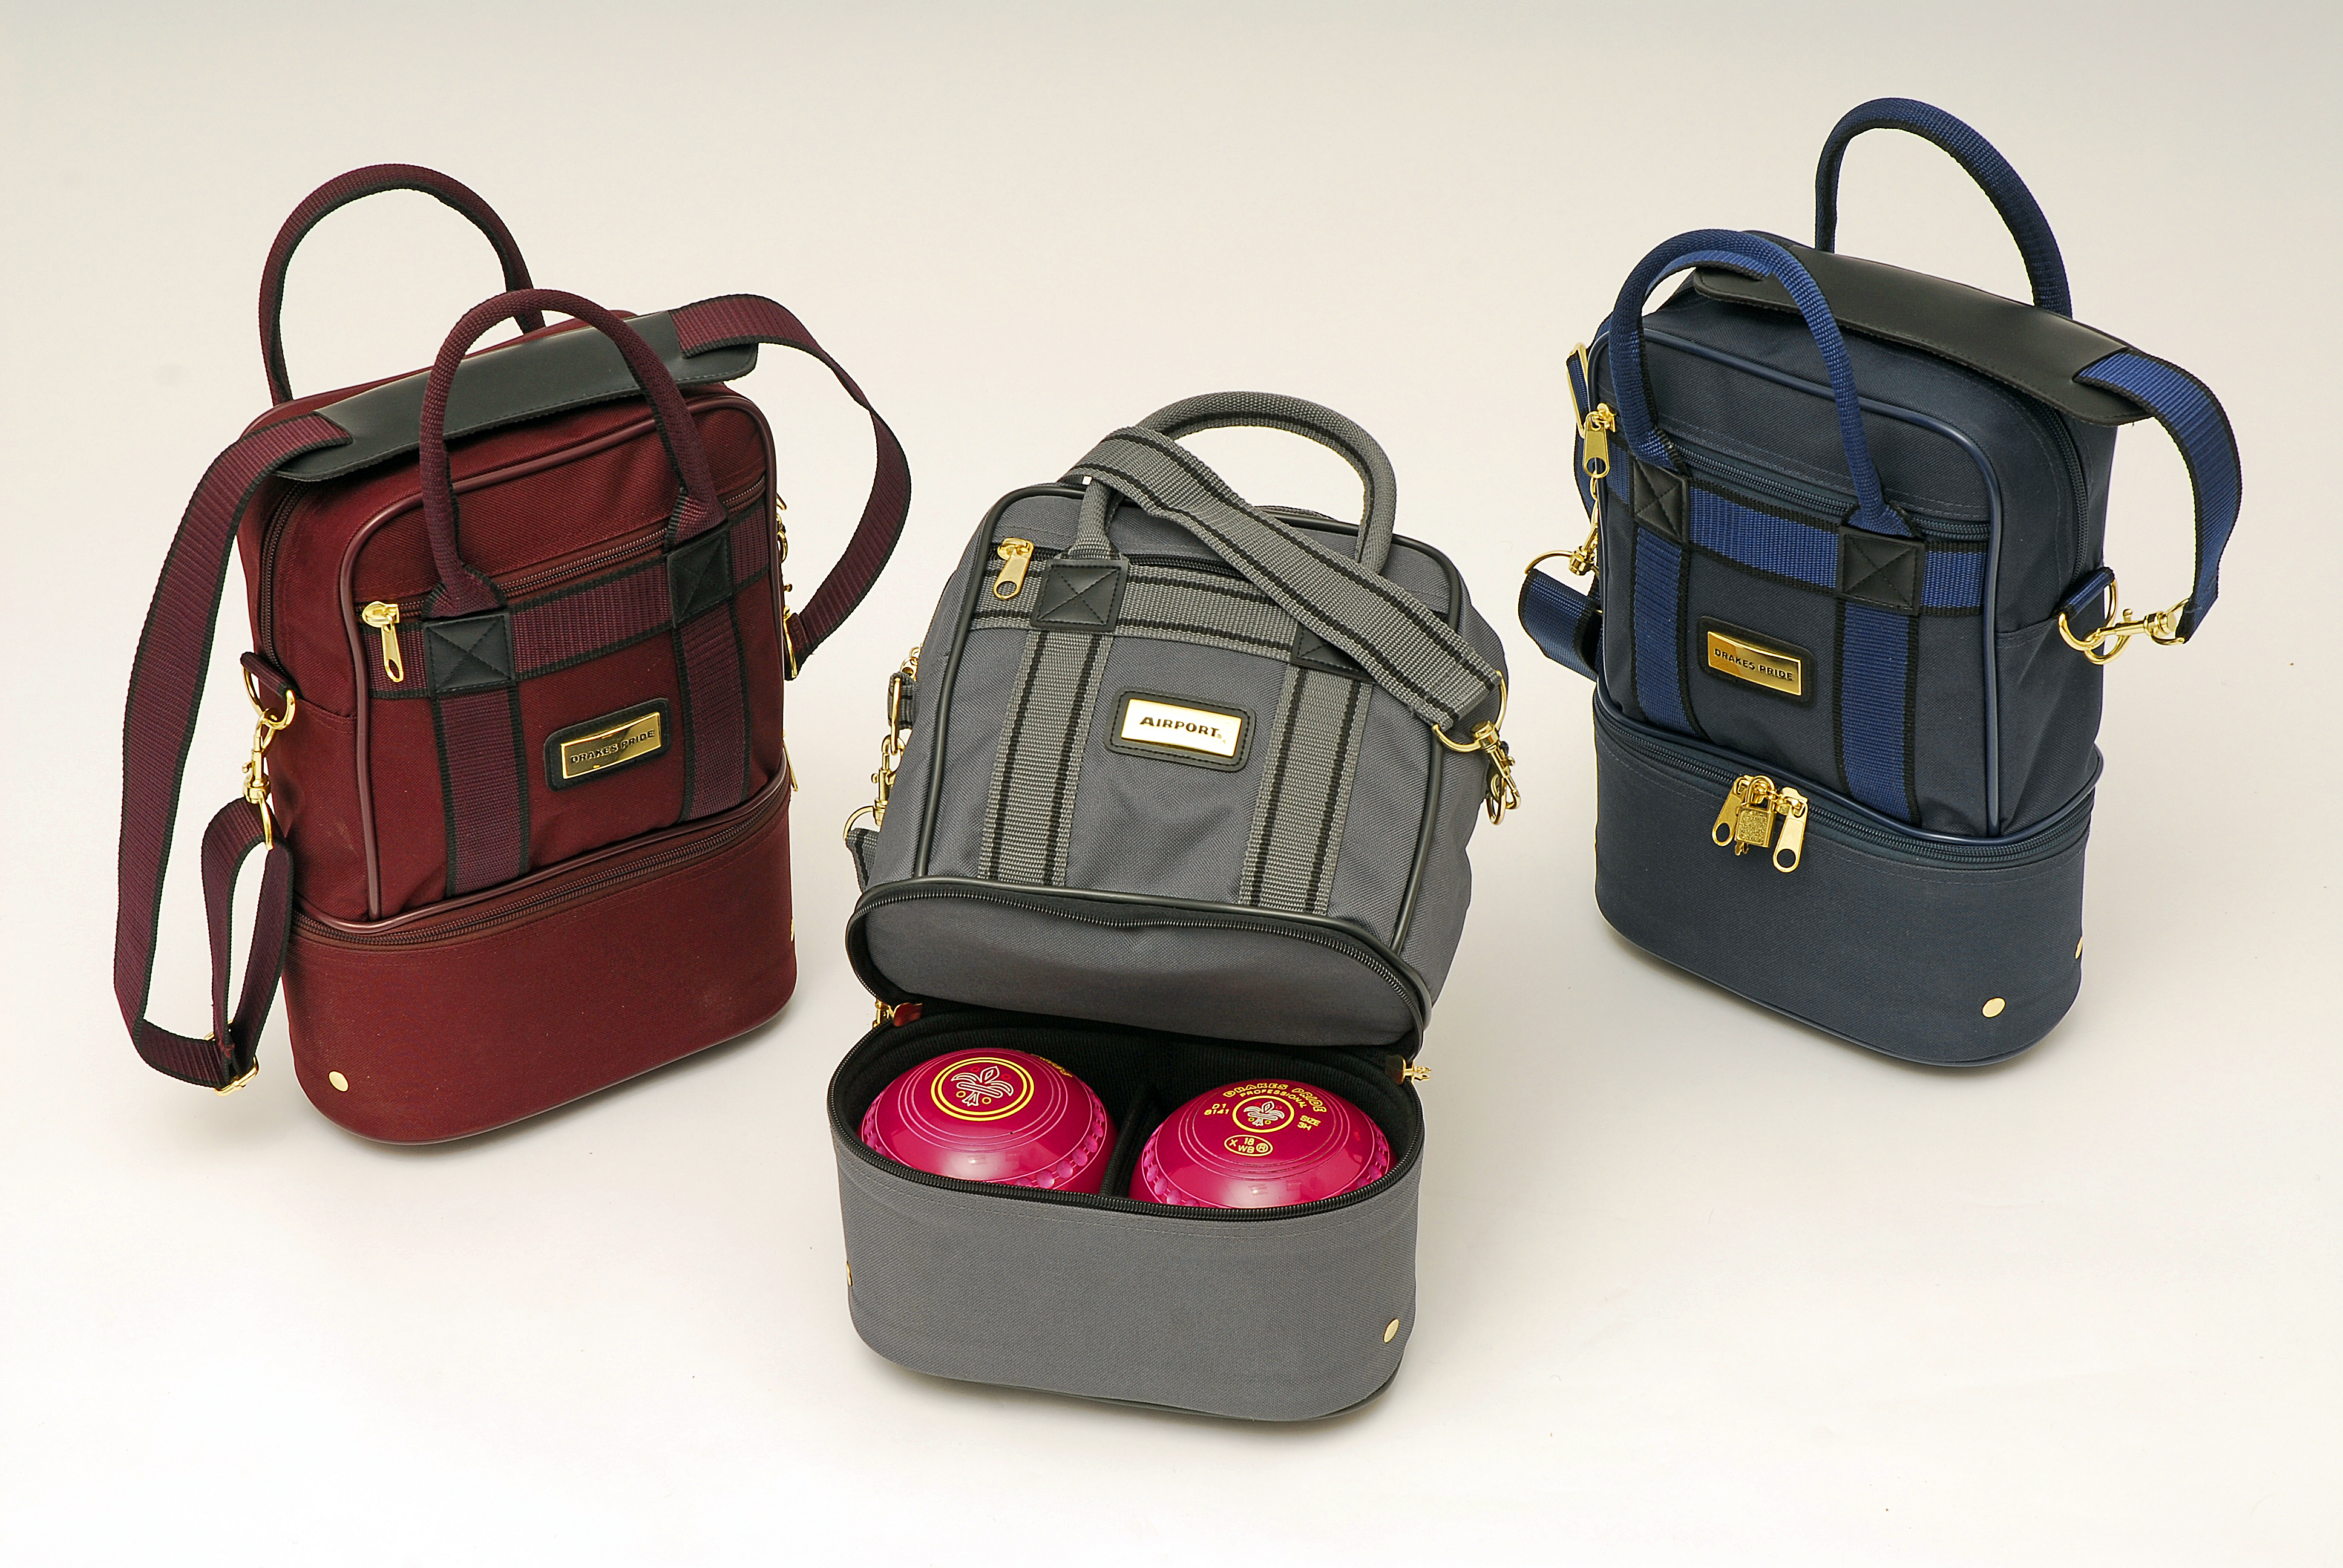 4e4f8a49a9d8 See Bigger Picture. Taylor 4 Bowl Cylinder Bag